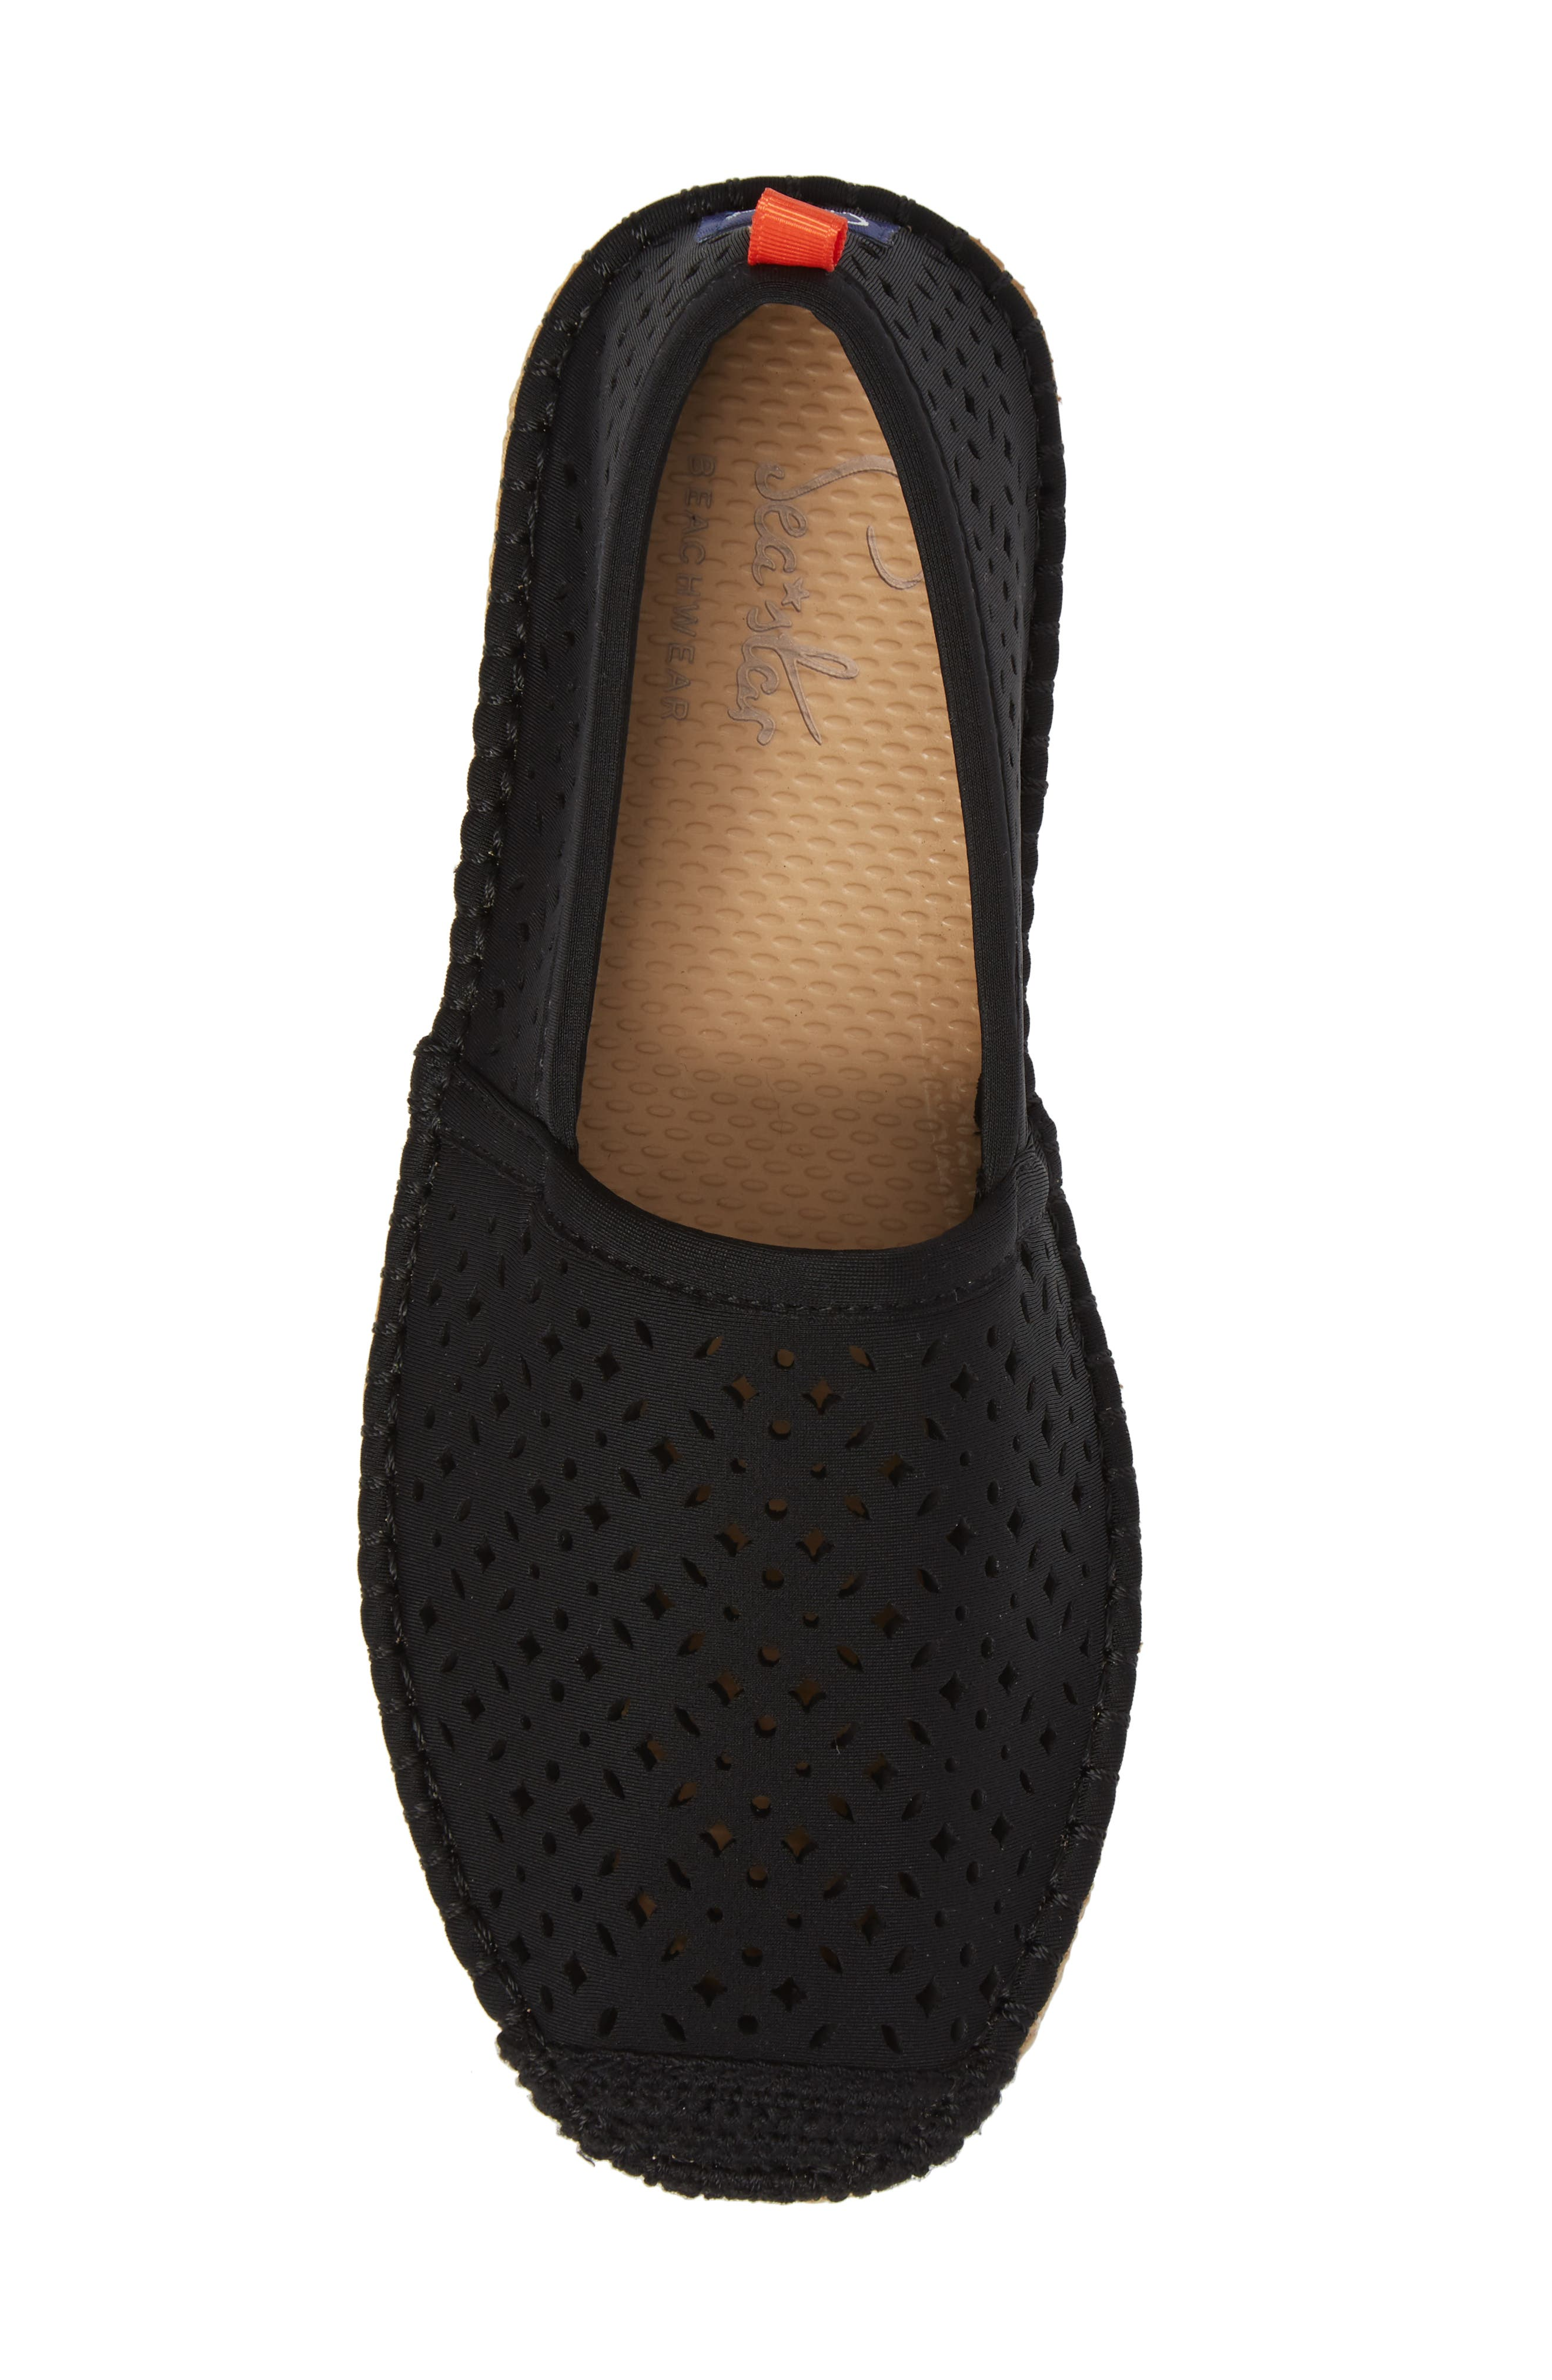 Sea Star Beachcomber Espadrille Sandal,                             Alternate thumbnail 5, color,                             BLACK EYELET